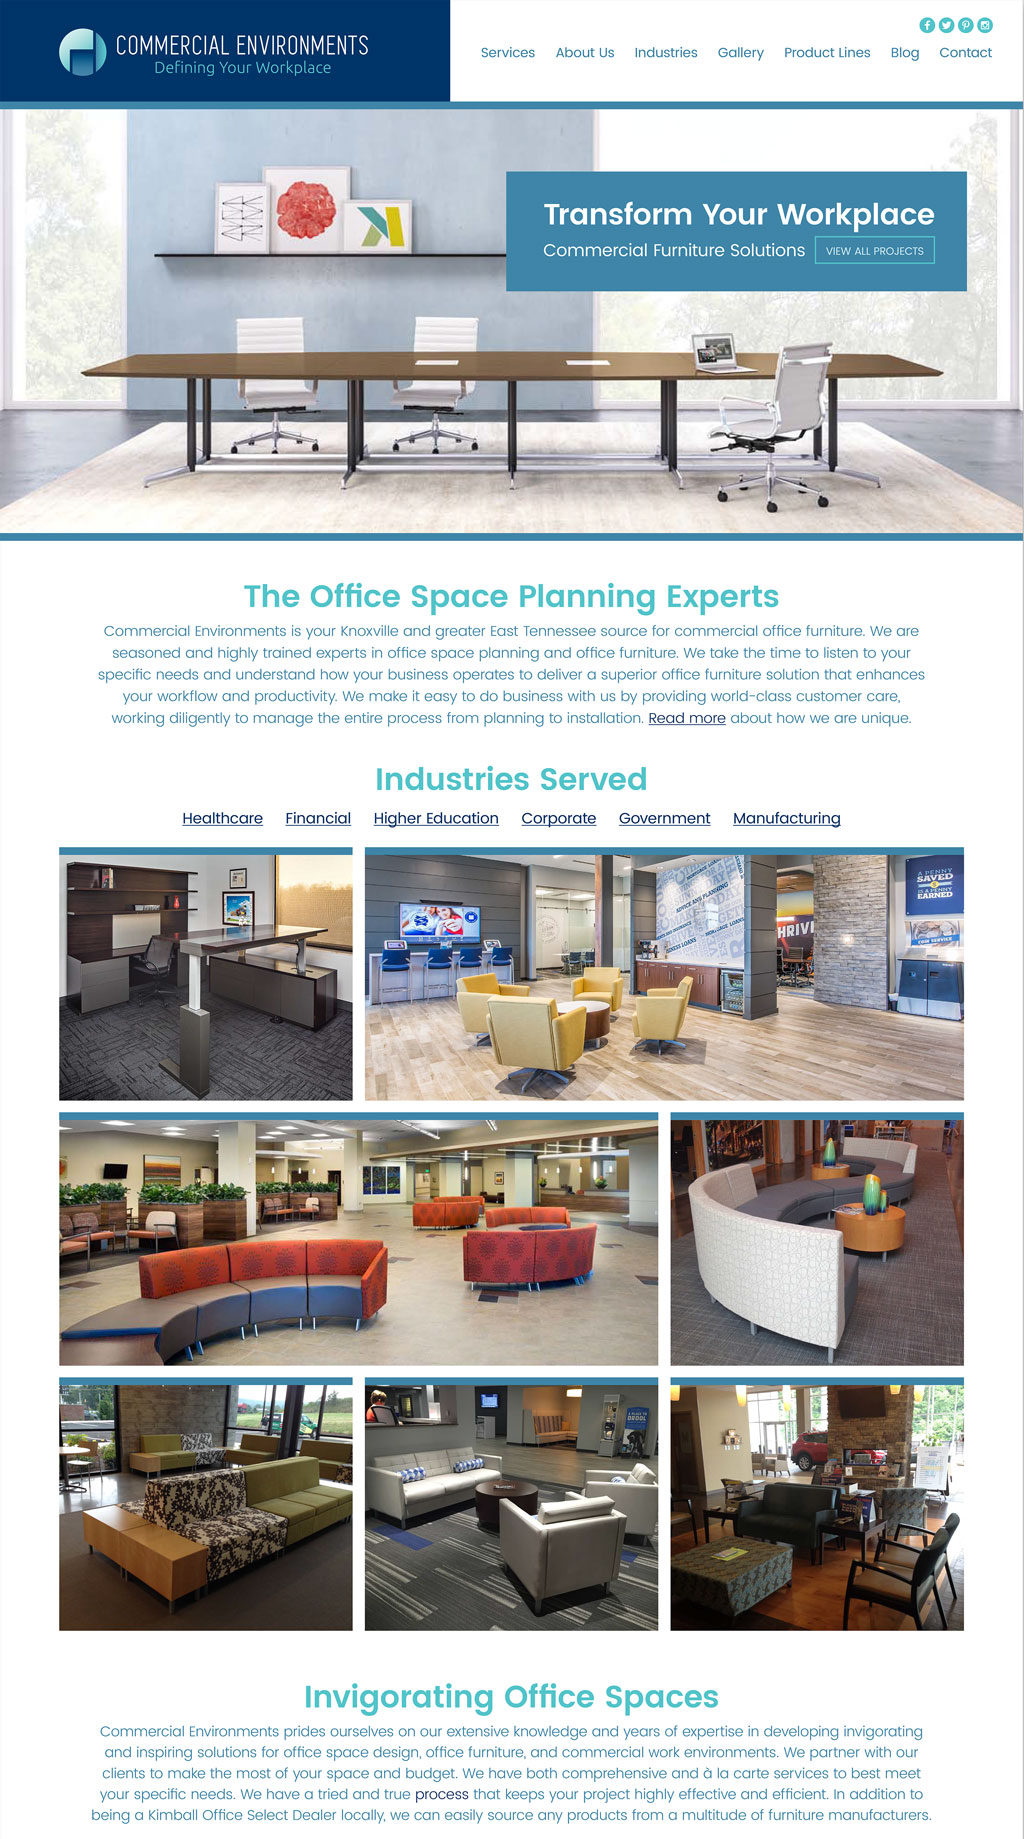 Commercial Environments needed a clean, design driven informational website